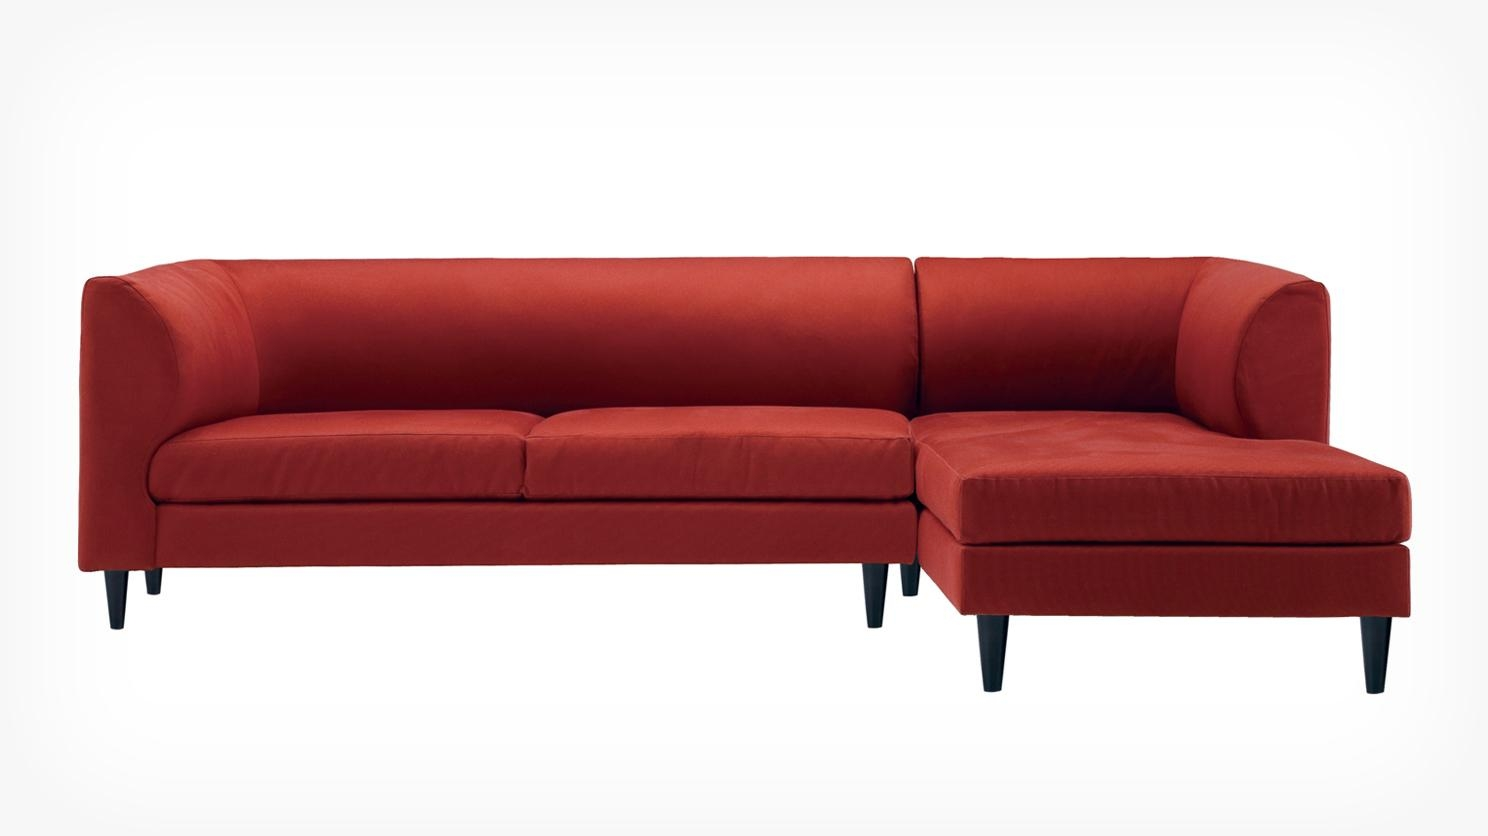 Eq3 | Living > Seating > Sectionals With Small 2 Piece Sectional (Image 8 of 20)